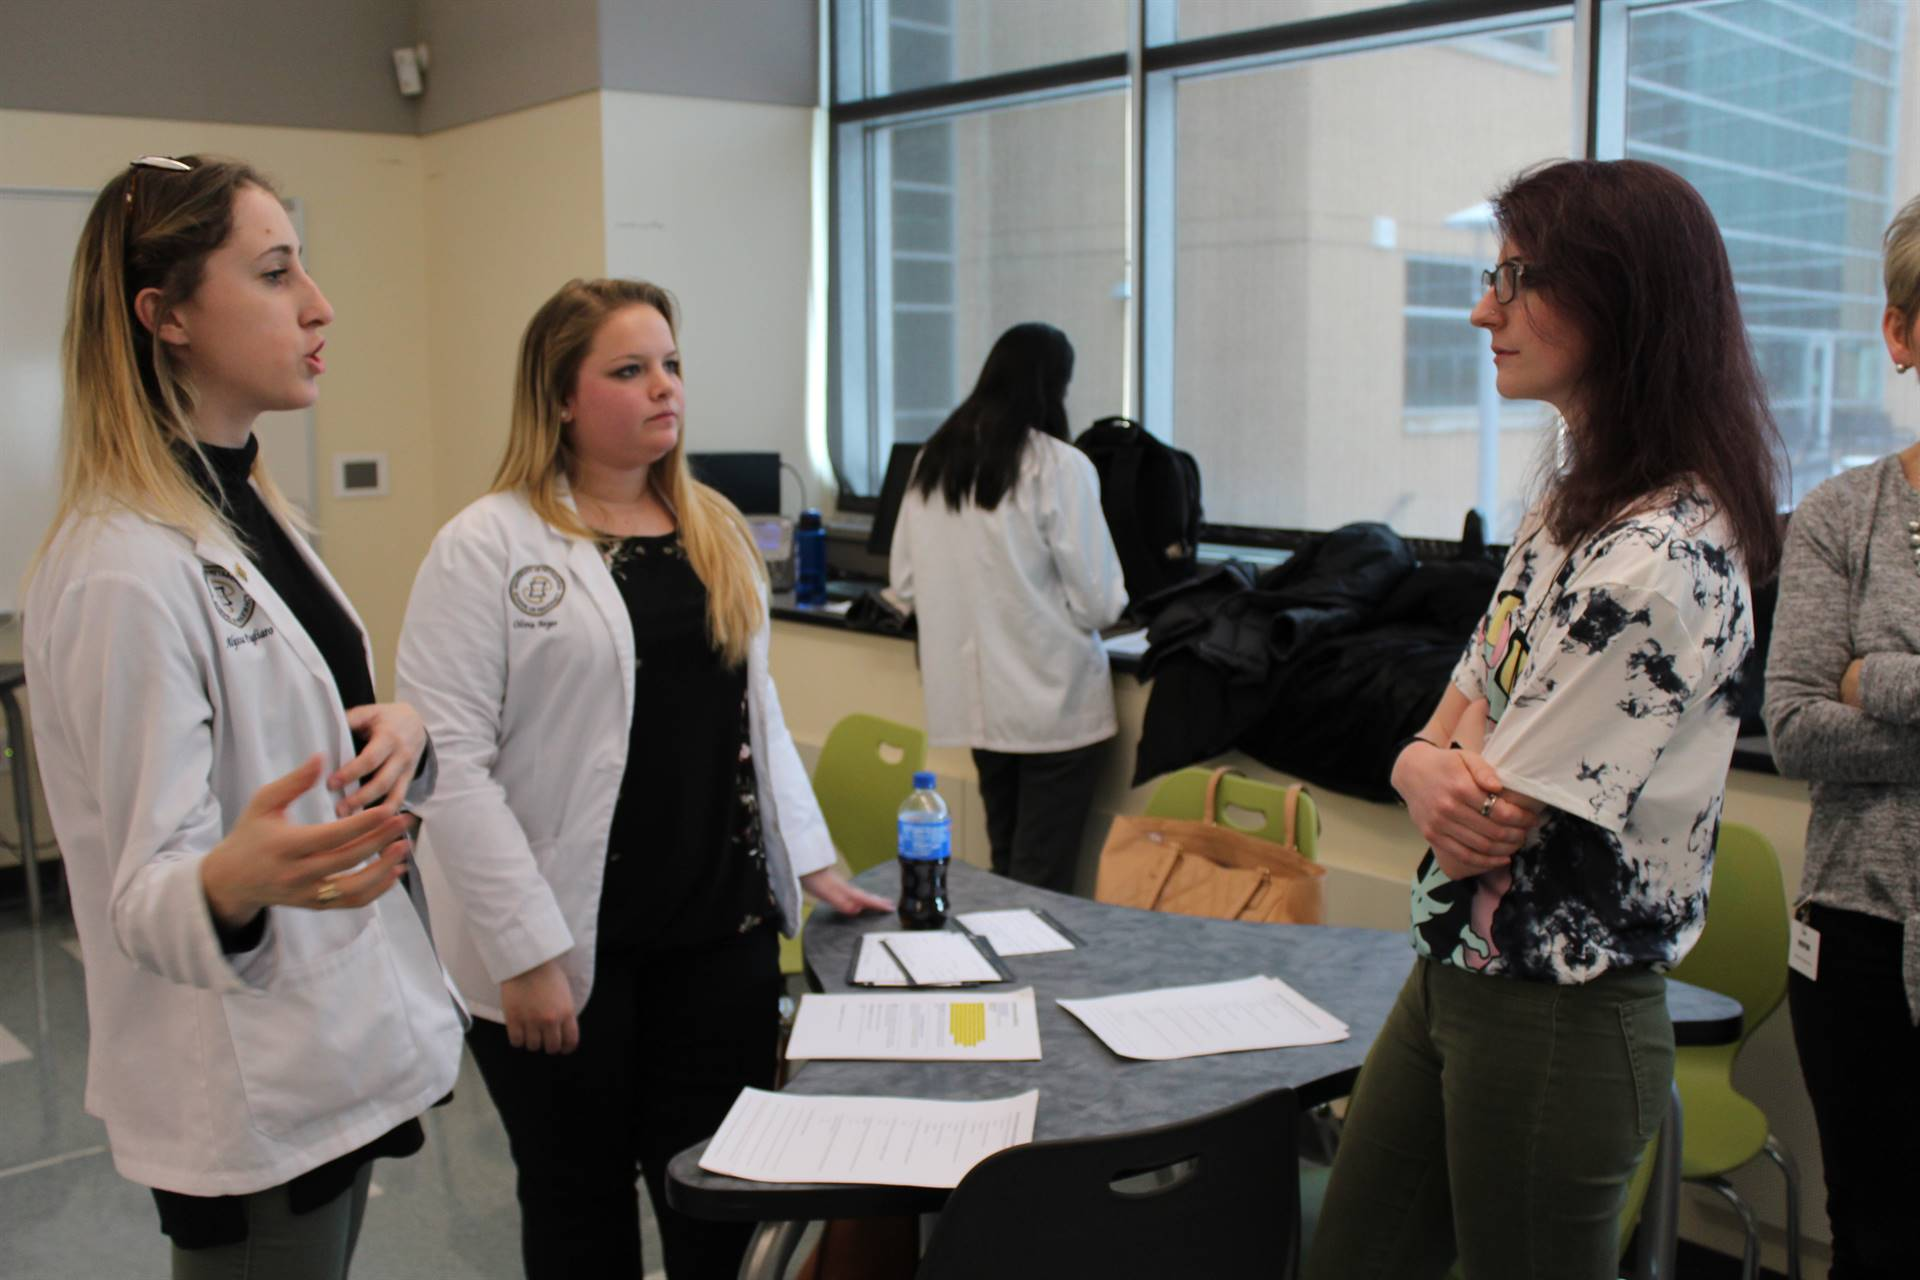 BPHS student talking to two Pitt Pharmacy student